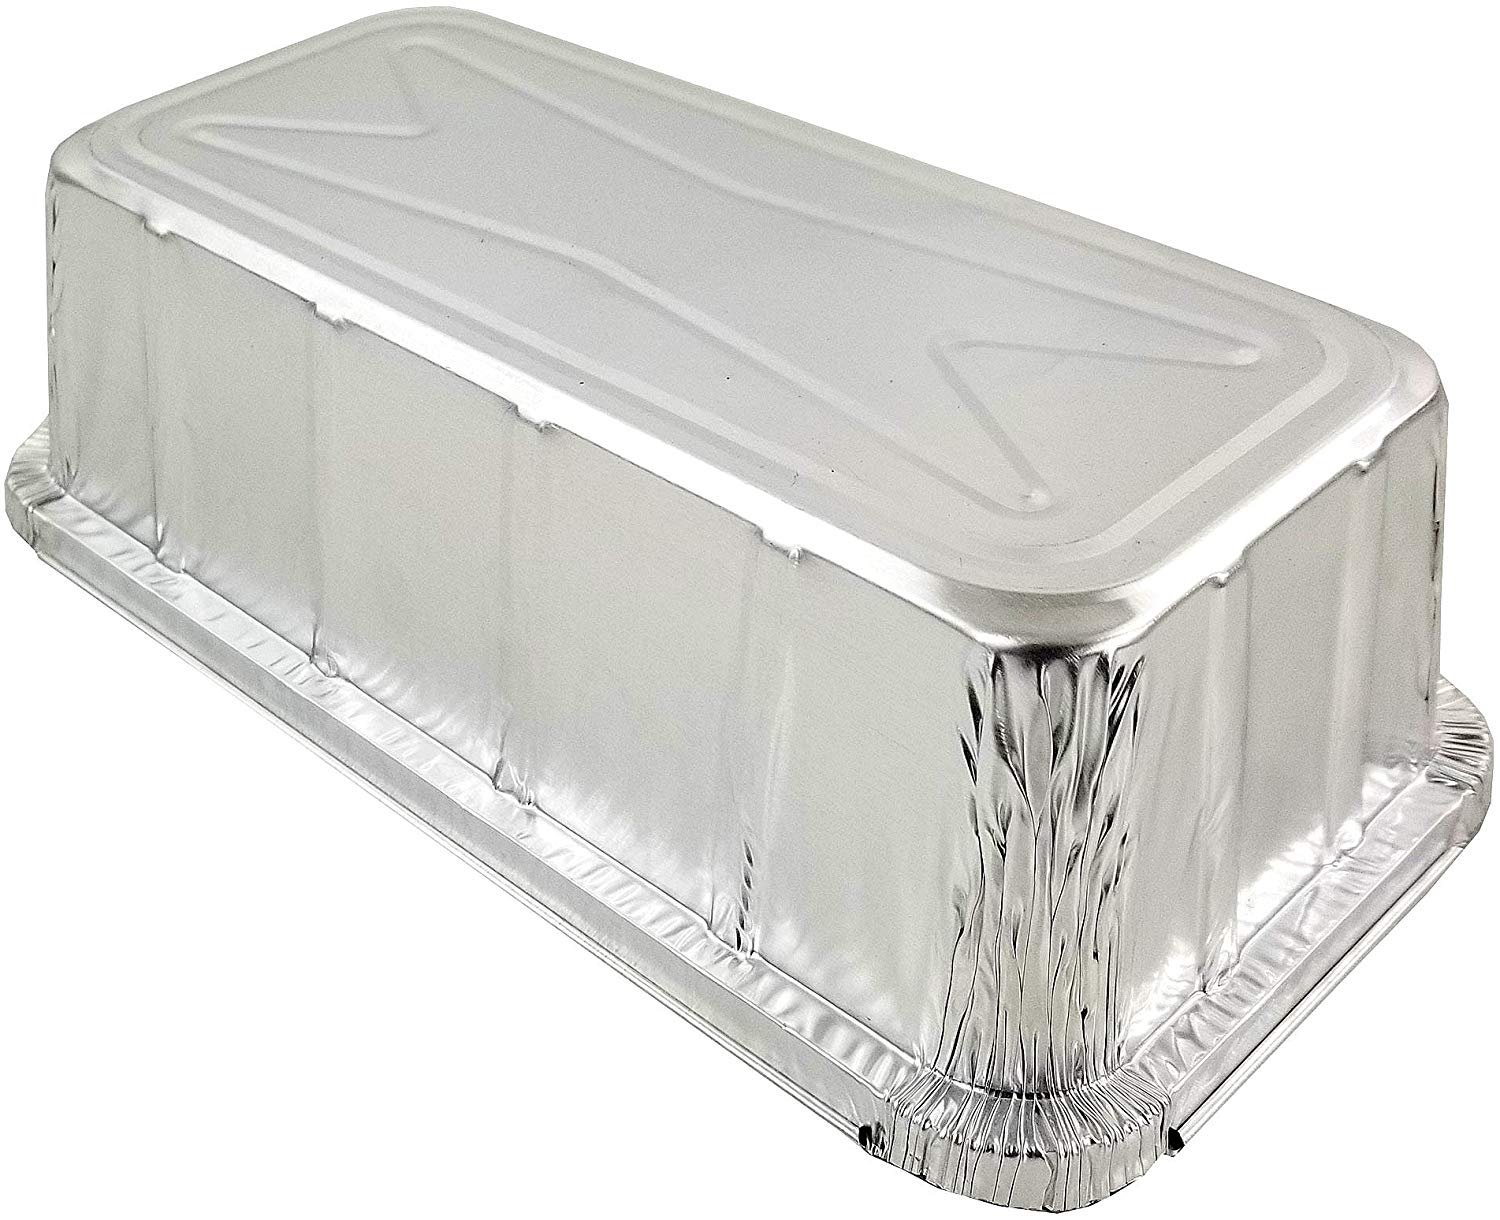 D&W Fine Pack A86 2 lb. Aluminum Foil Closable Loaf Pan w/DomeLid 50/PK